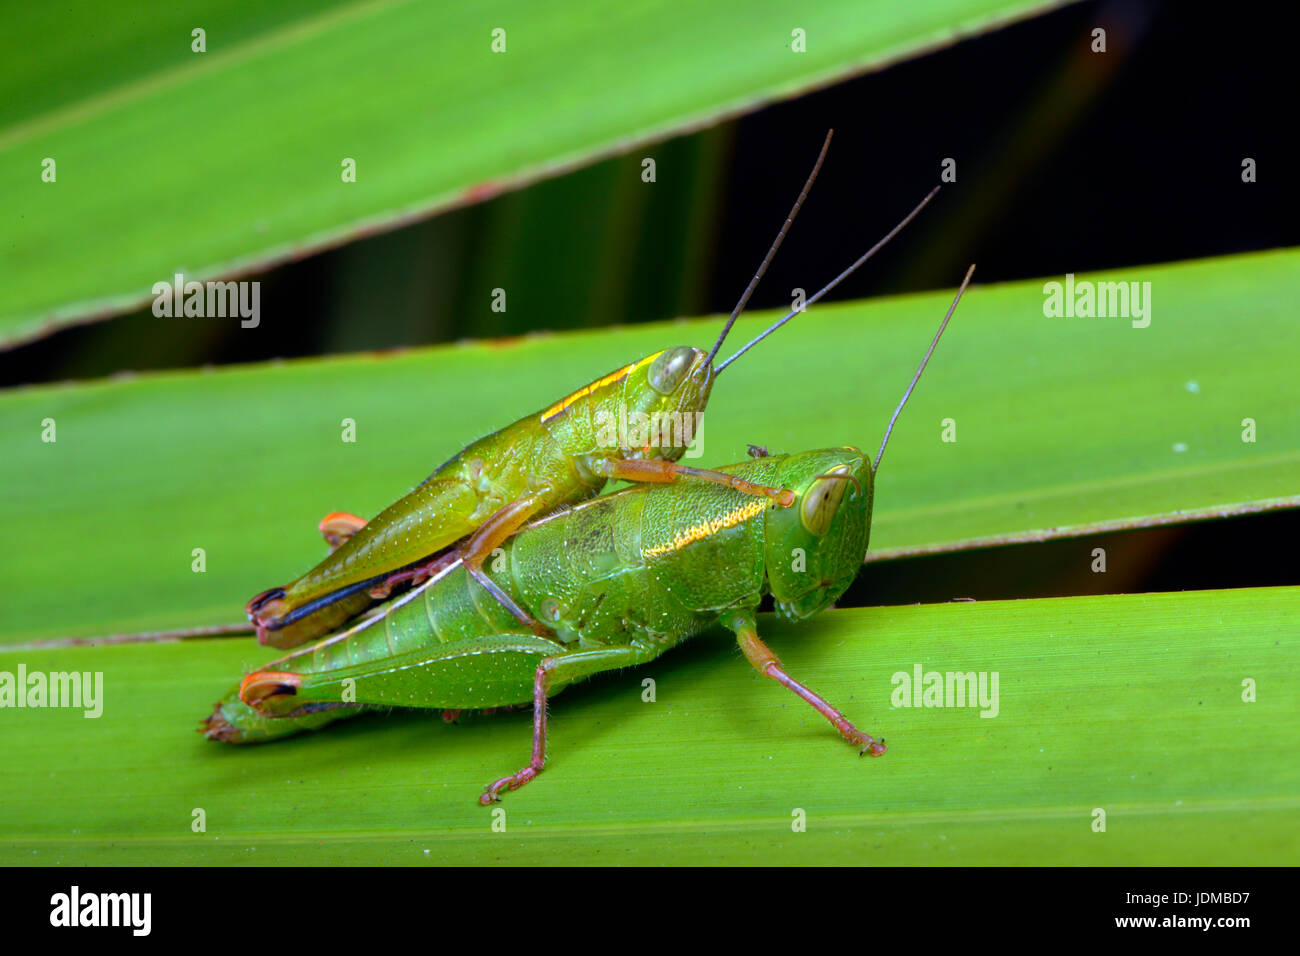 A pair of wingless Florida grasshoppers, Aptenopedes aptera, on palmetto. - Stock Image